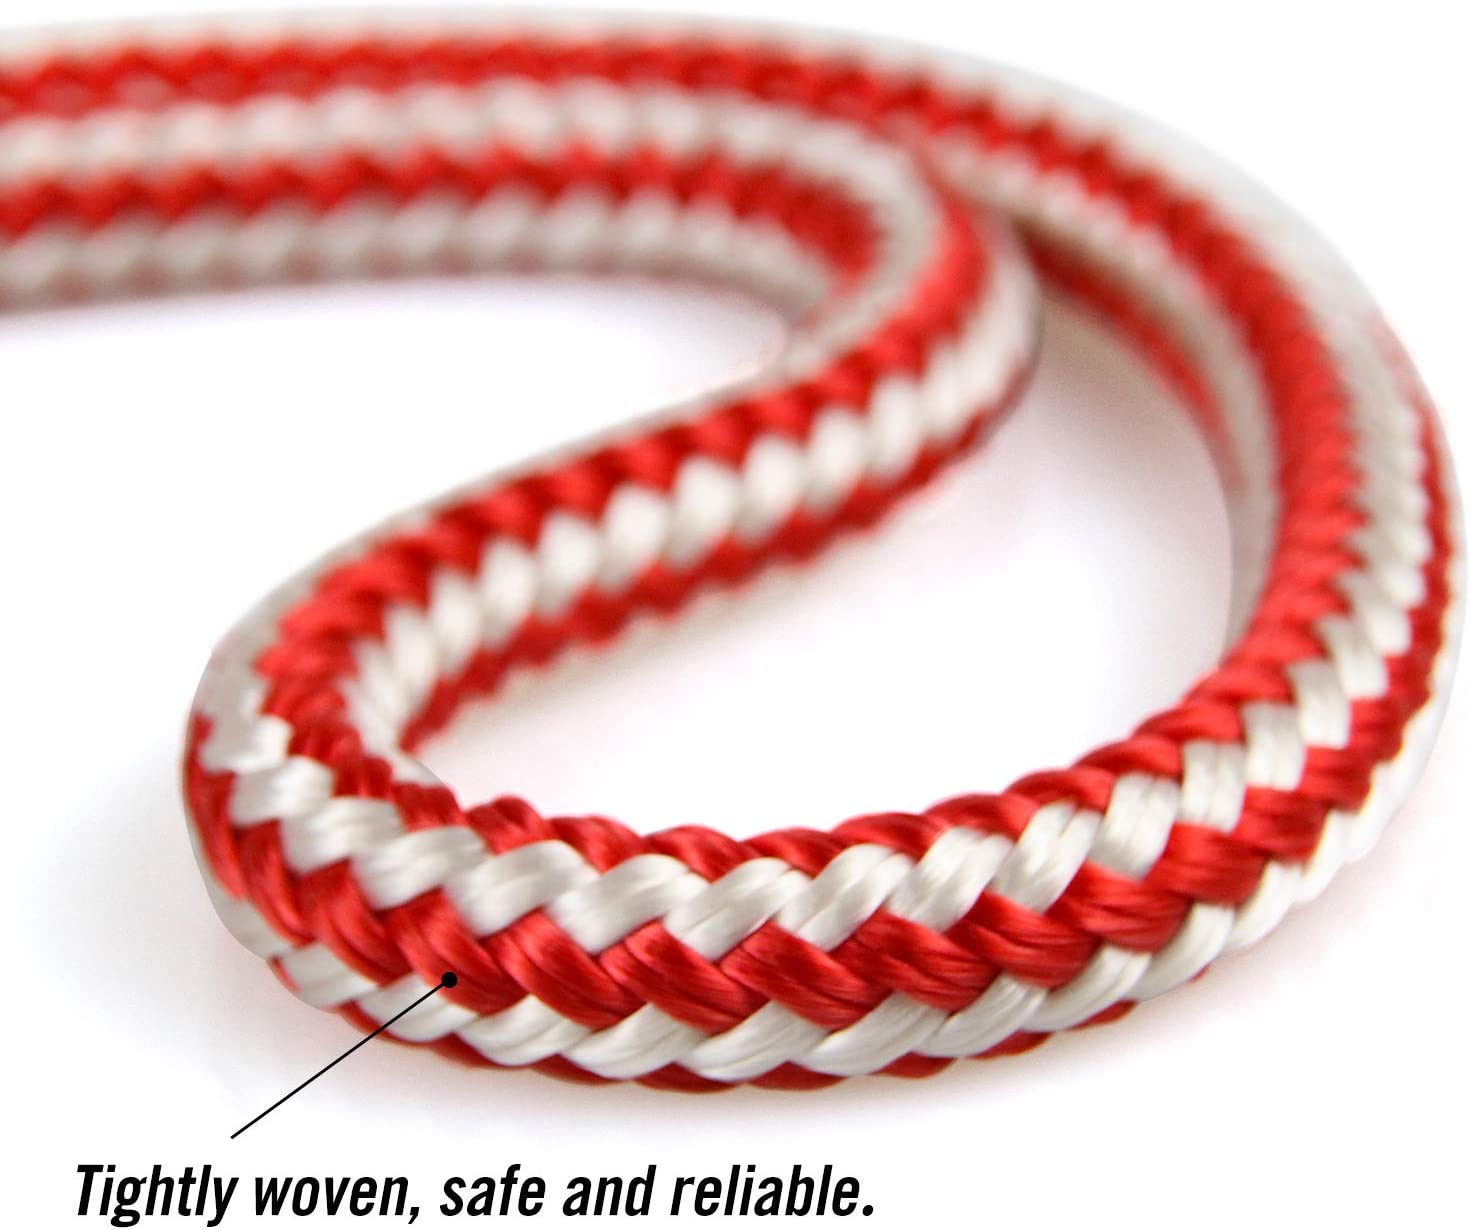 "Perantlb Double Braid 3/7"" 150 ft 24-Strand Nylon Arborist Climbing Rope, Climbing Equipment Fire Rescue Parachute Rope, Boat Rope, Pre-Shrunk, Heat Stabilized, Red/White : Sports & Outdoors"